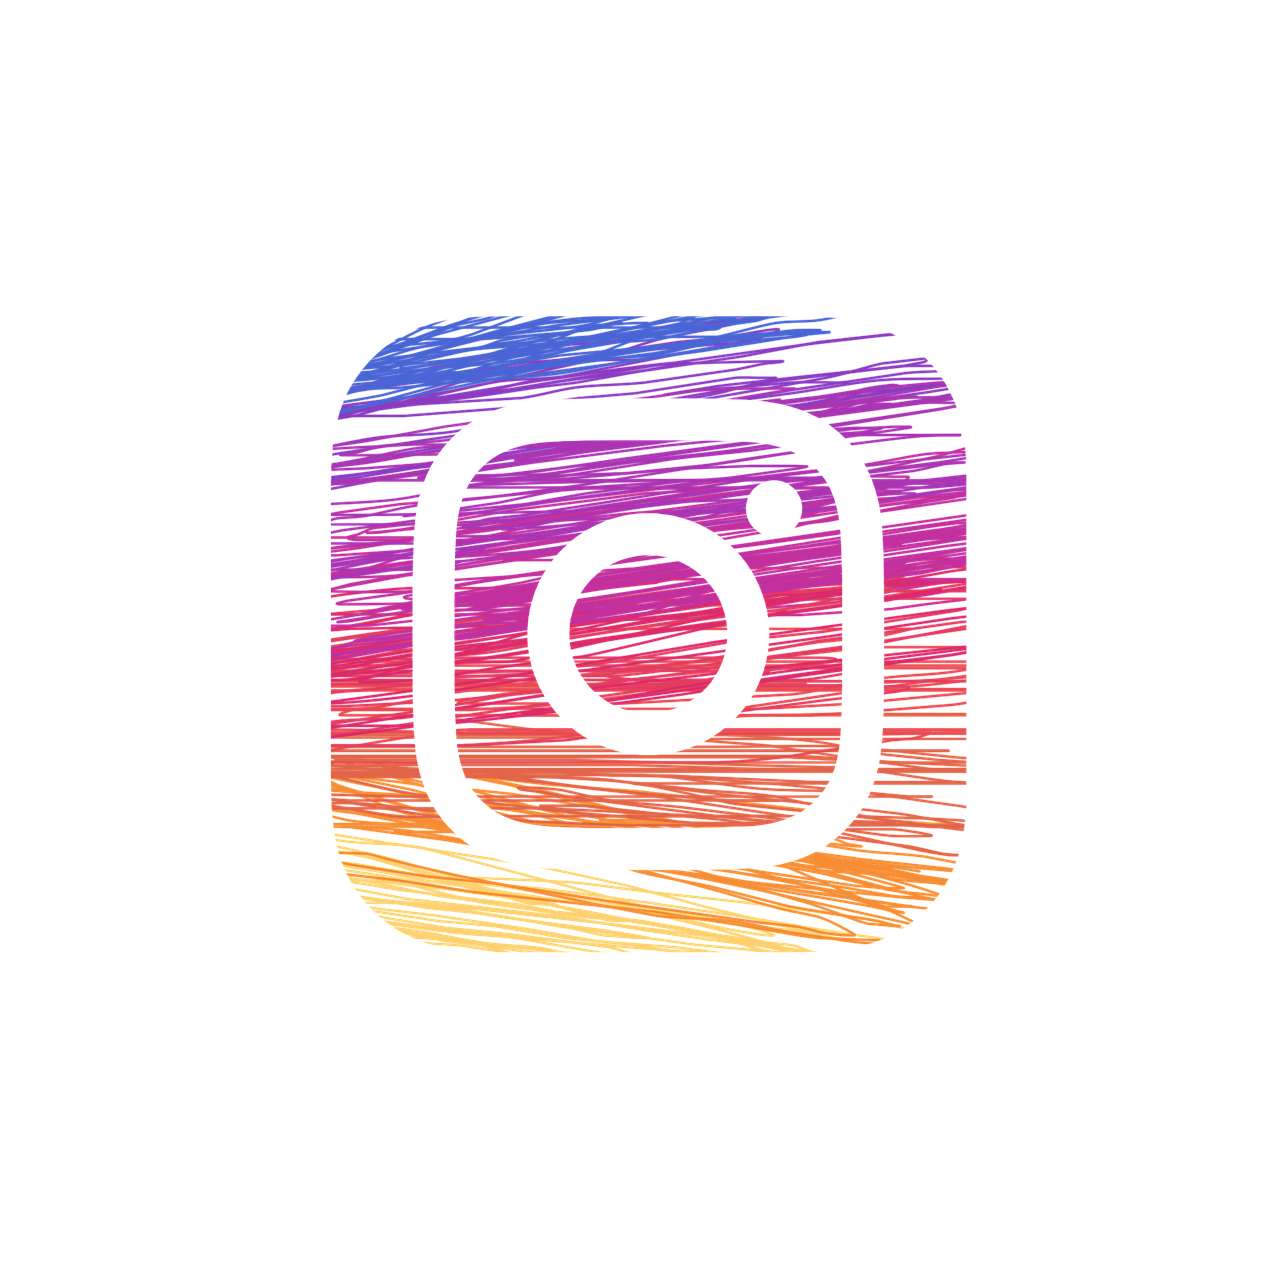 File:Instagram Icon png - Wikimedia Commons